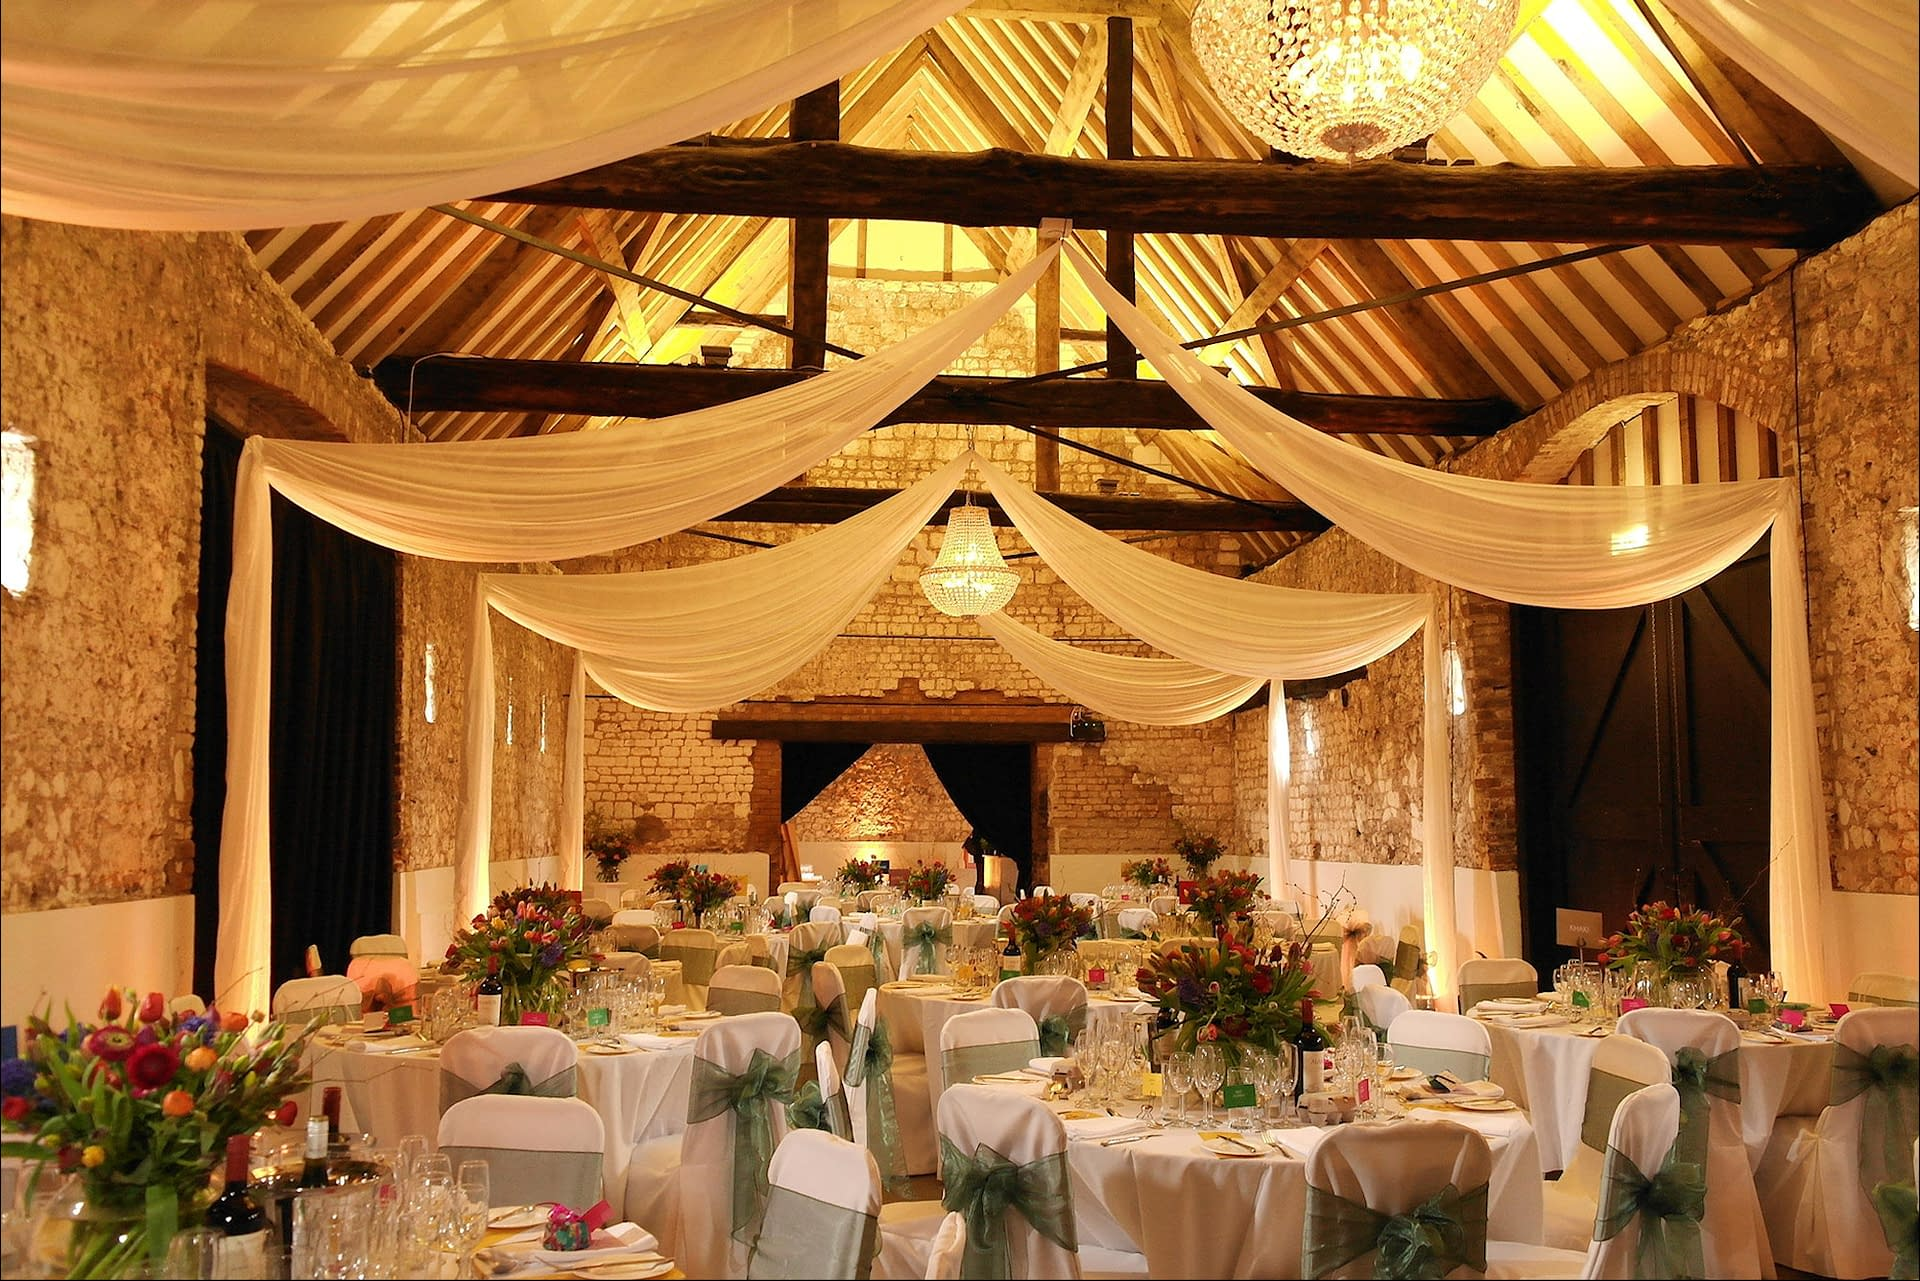 Ceiling swags with chandeliers and warm uplighting at Monks Barn wedding venue UK